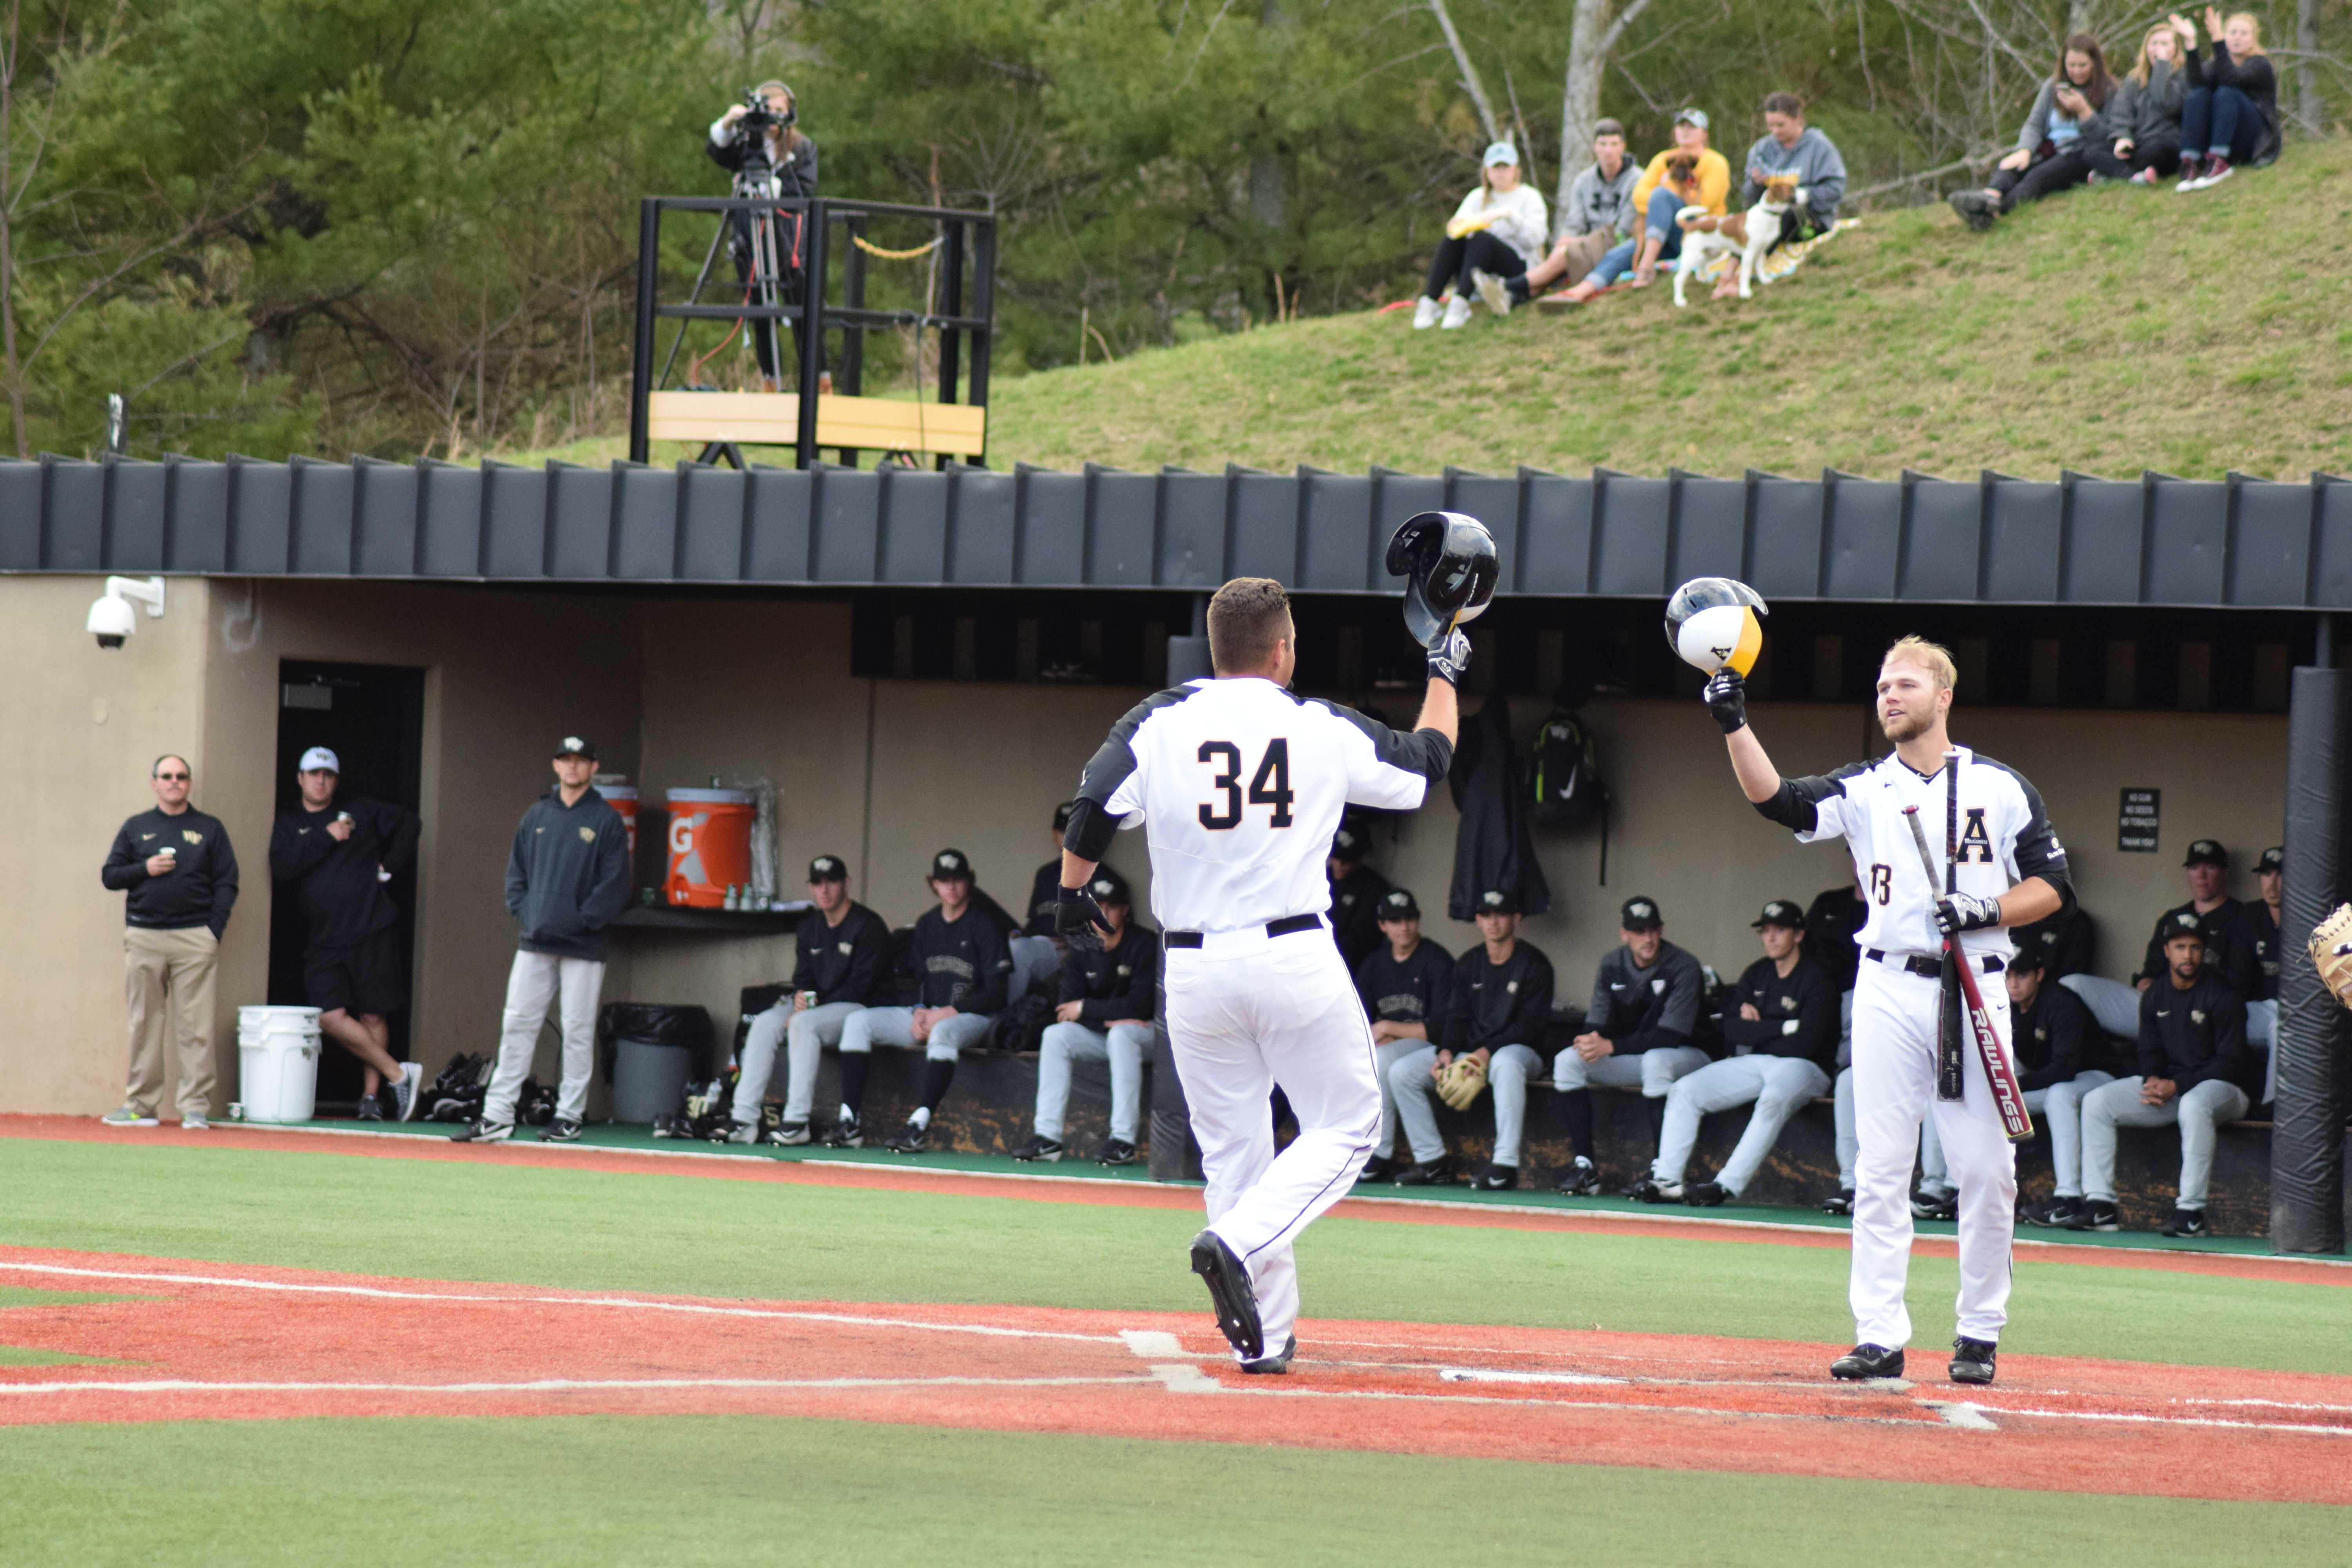 Conner Leonard hit a home run in the bottom of the fifth inning to put App State up over Wake Forest.